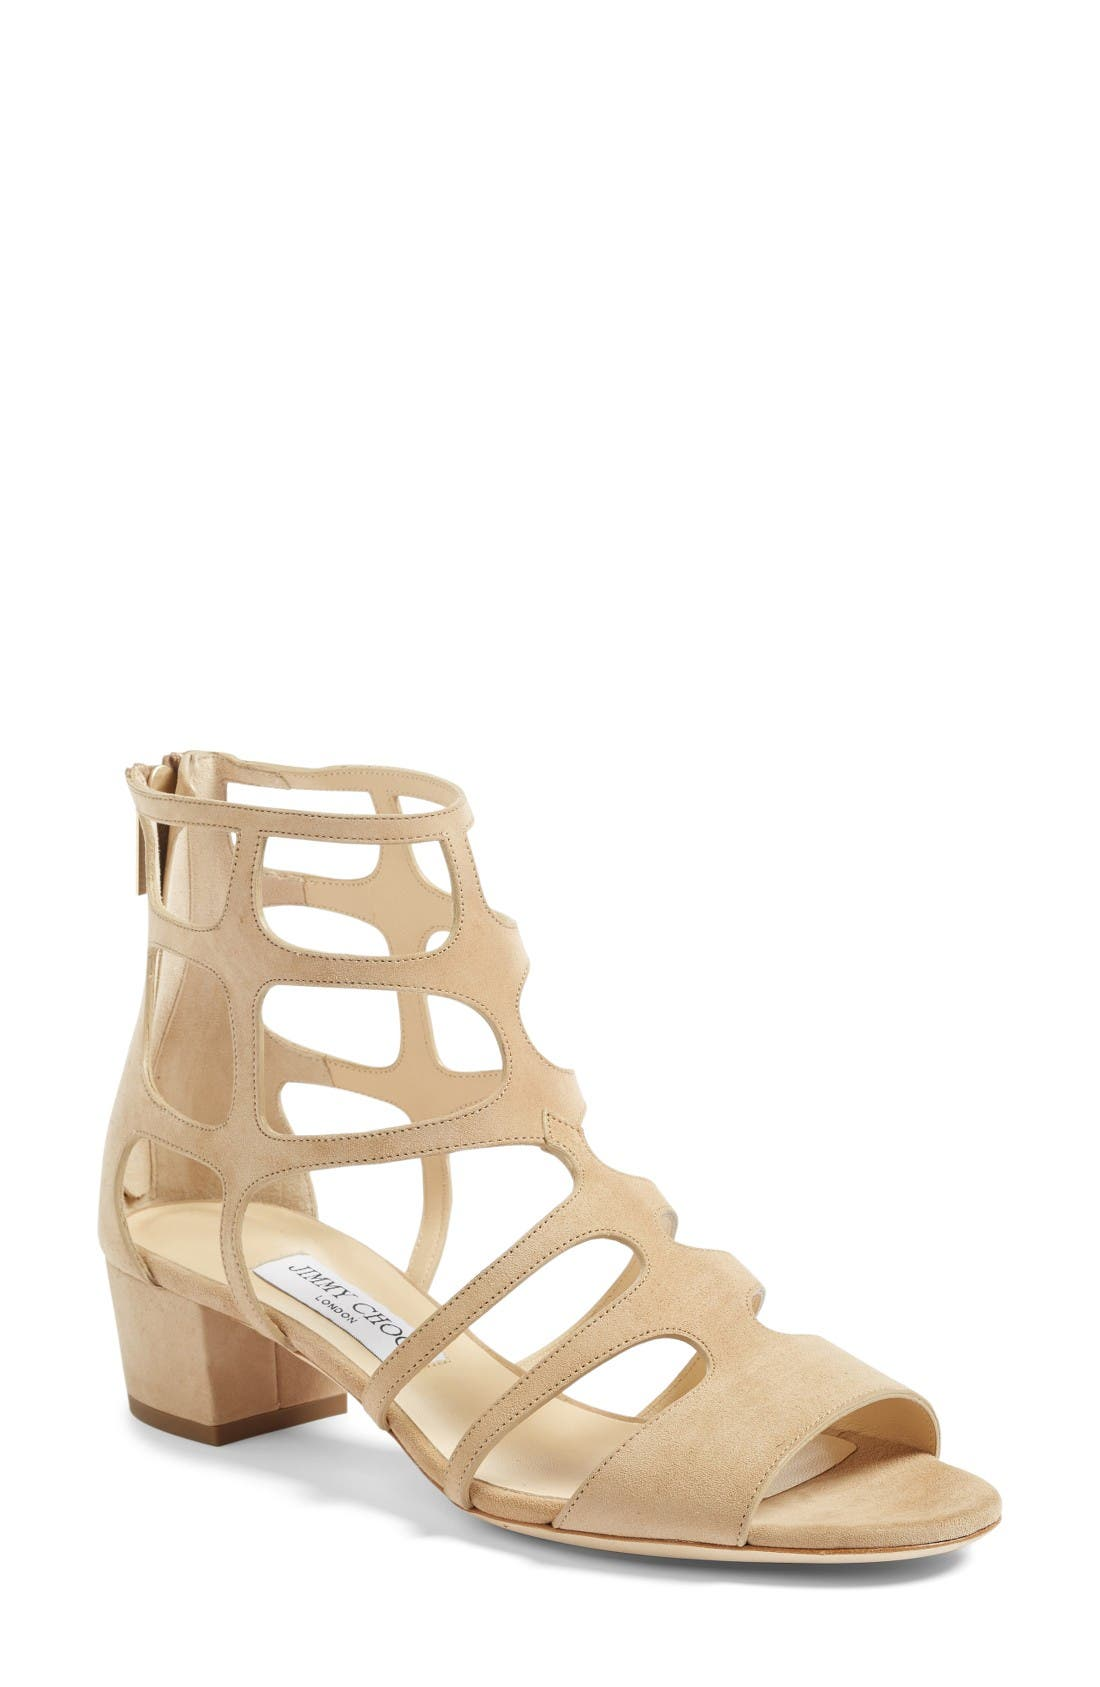 Jimmy Choo Ren Block Heel Sandal (Women)